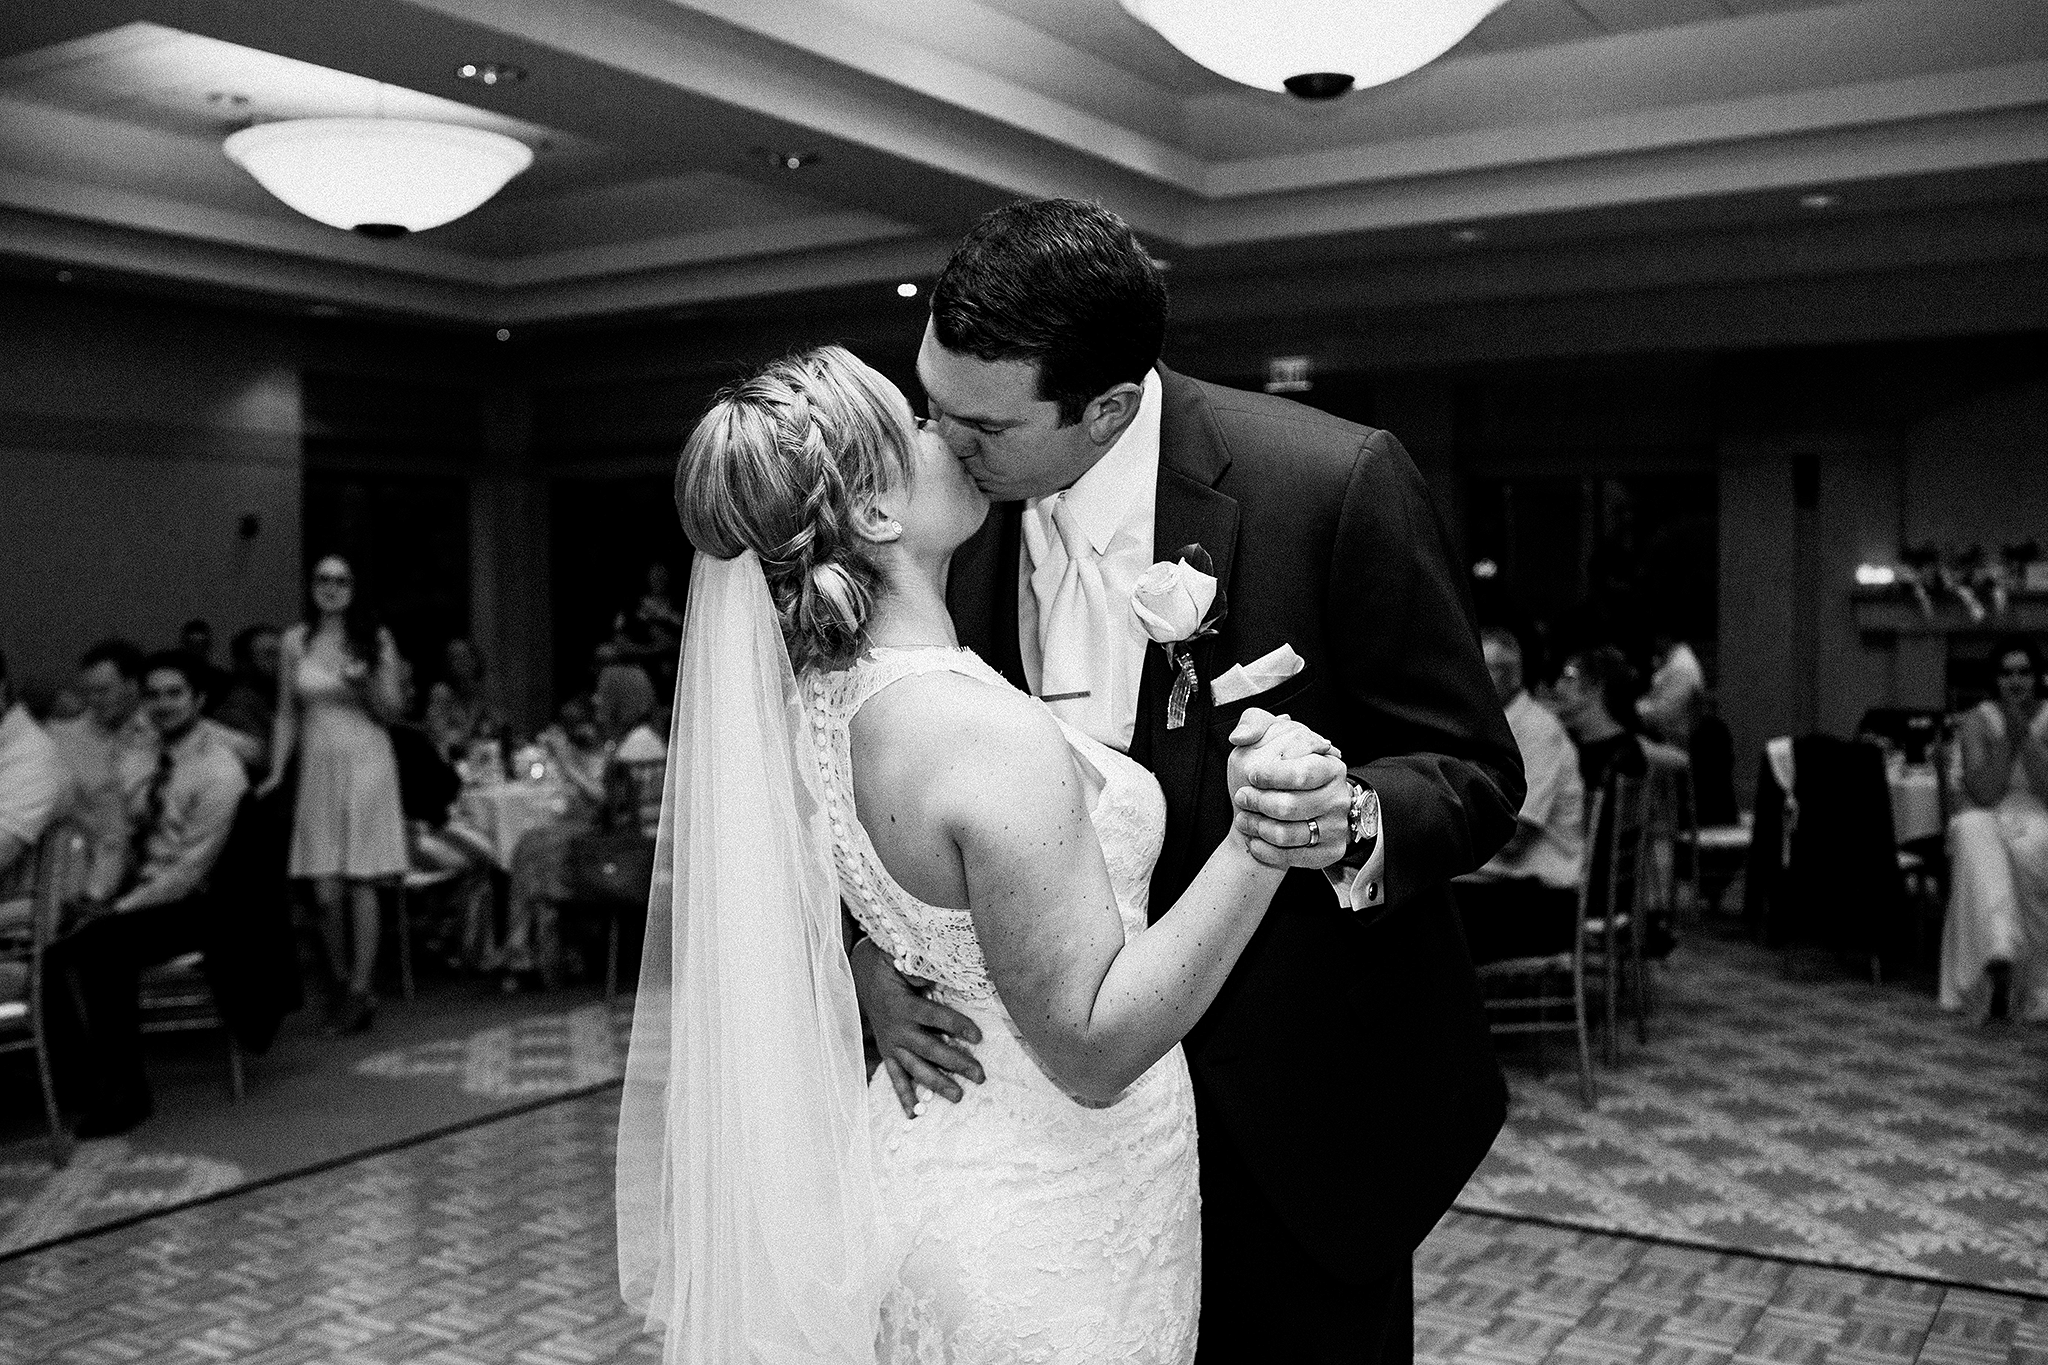 bride and groom first dance, kissing | barsema alumni center dekalb Il wedding photographer